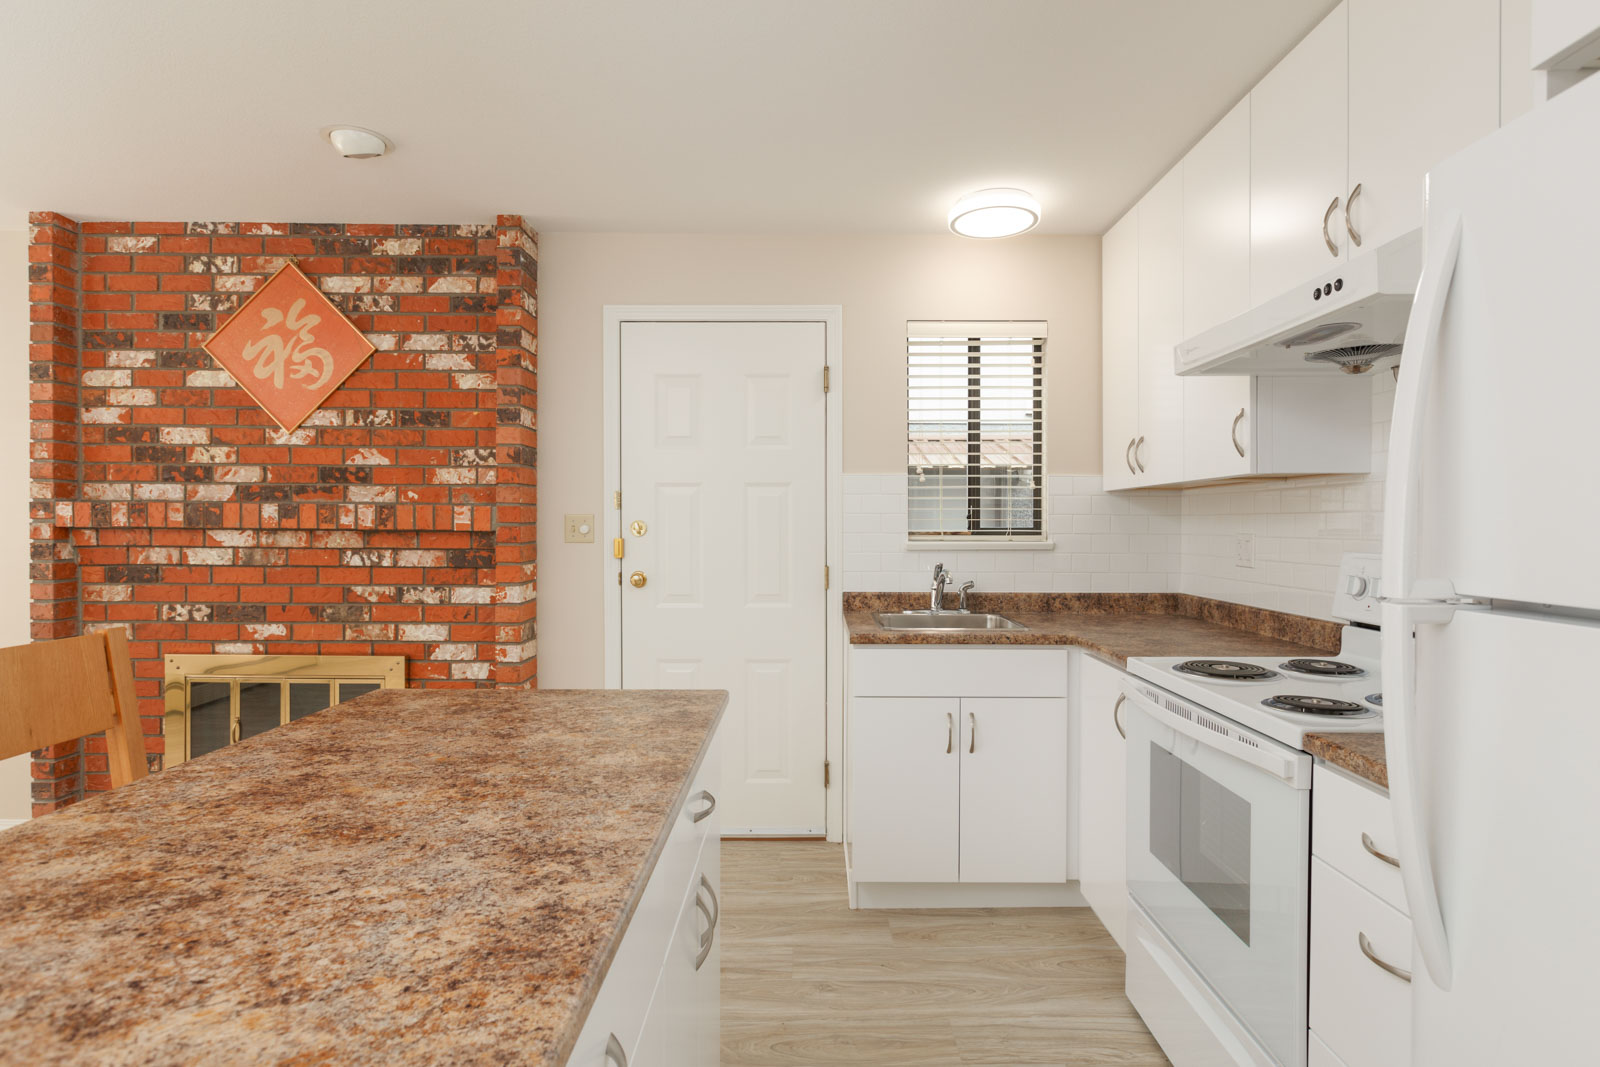 Cozy living area with an authentic brick fireplace in the suite and a kitchen with full range of appliances and storage space with a kitchen island, inside a unit with laminate hardwood flooring in a rental home in East Vancouver provided by Birds Nest Properties